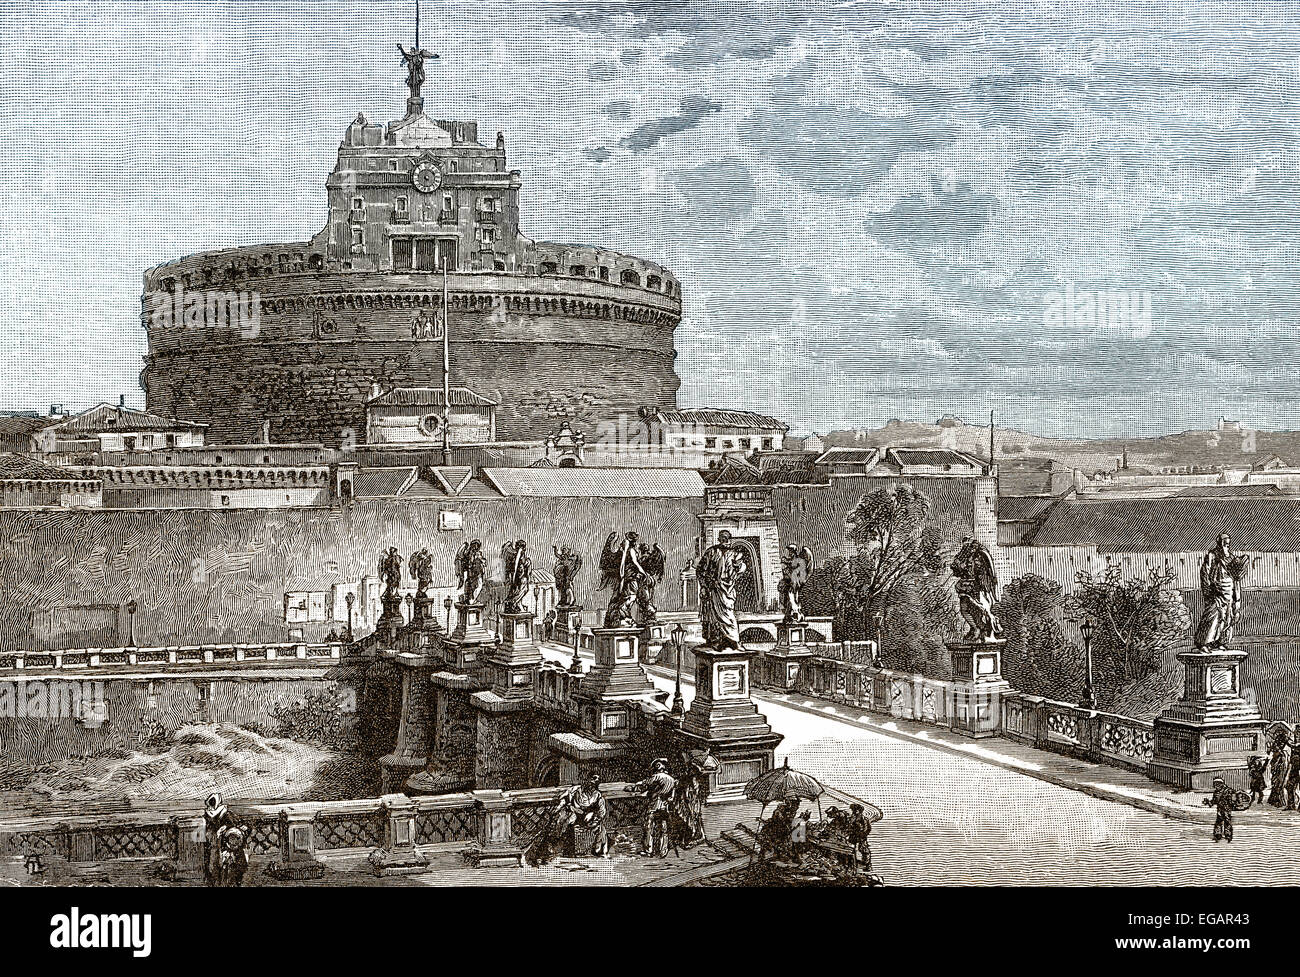 Mausoleum of Hadrian, known as Castel Sant'Angelo or Castle of the Holy Angel, ancient Rome, - Stock Image